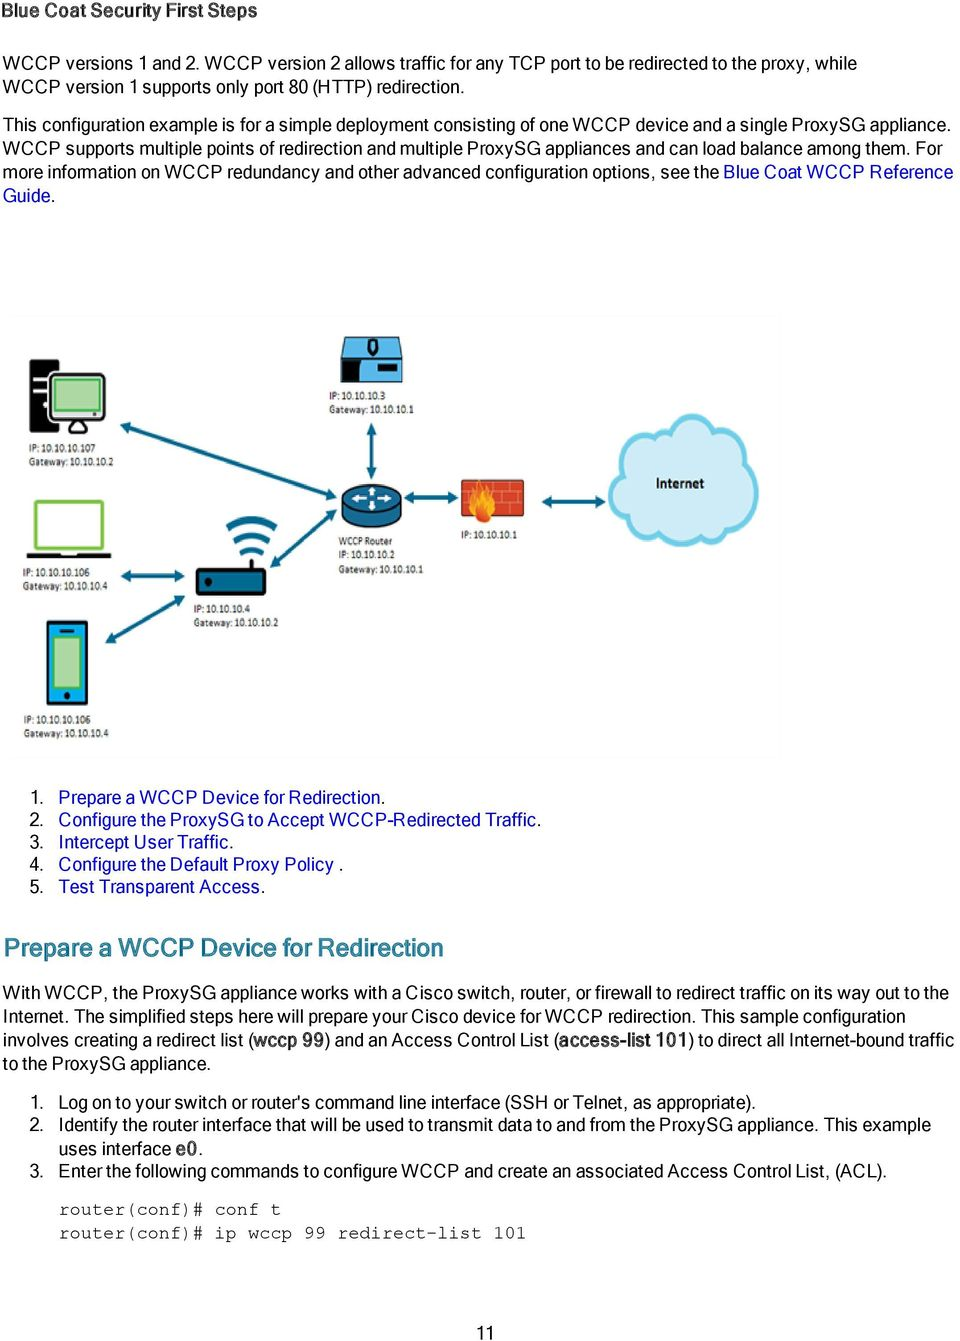 WCCP supports multiple points of redirection and multiple ProxySG appliances and can load balance among them.